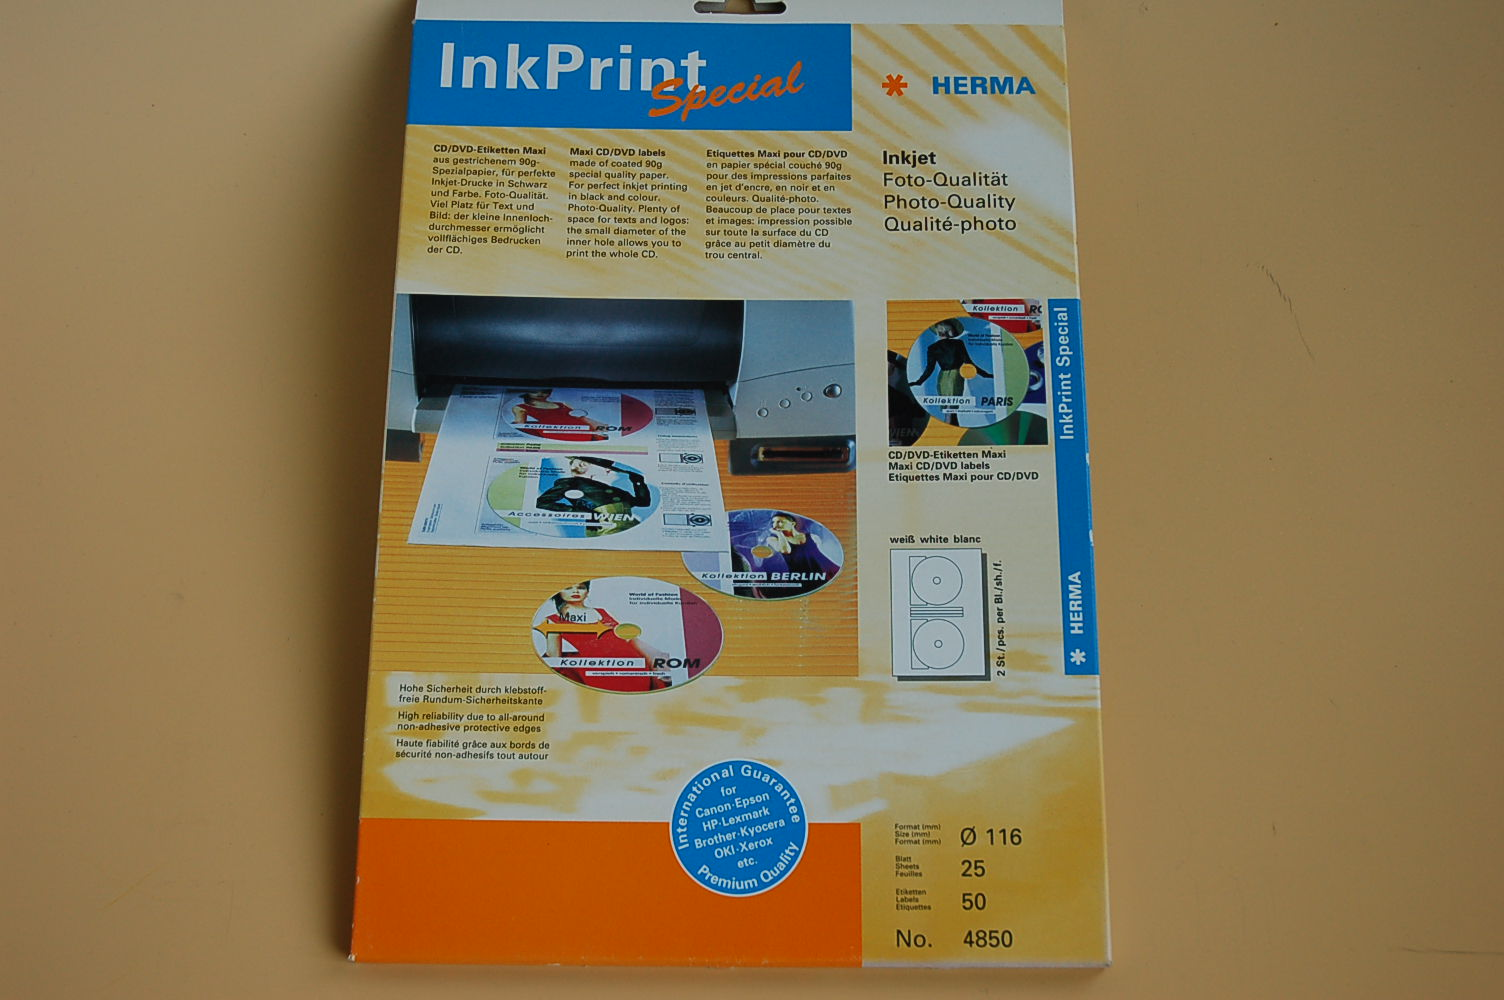 Herma InkPrint CD/ DVD Etiketten Maxi Ø116mm 25 Bl. 4850 (10Bl.=4,80€)